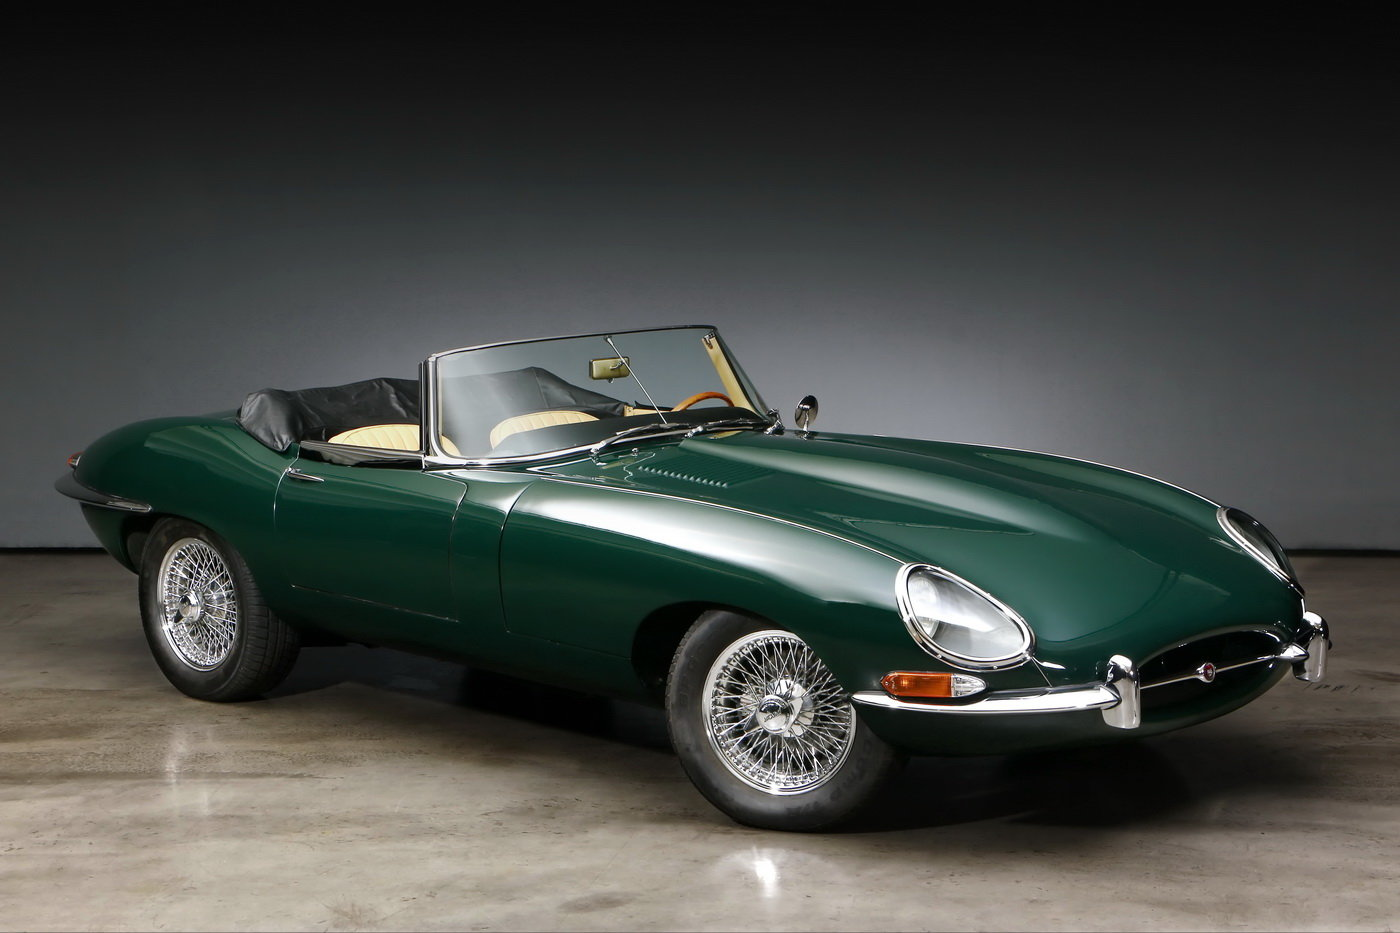 1965 Jaguar E-Type 1 Series 4.2 ltr Roadster For Sale (picture 1 of 6)